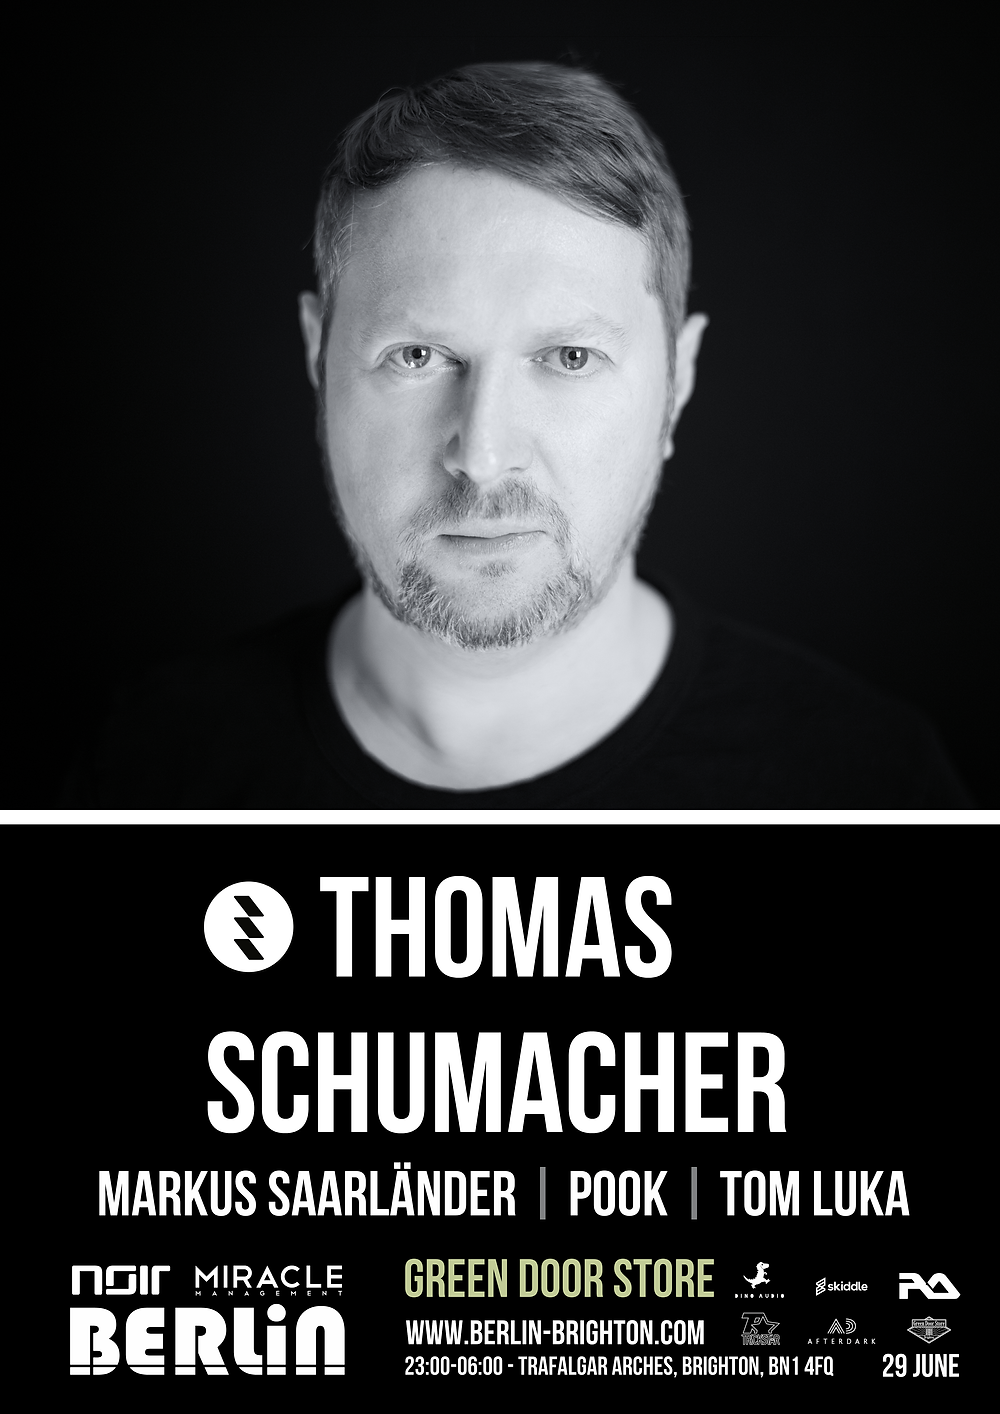 Berlin presents Thomas Schumacher